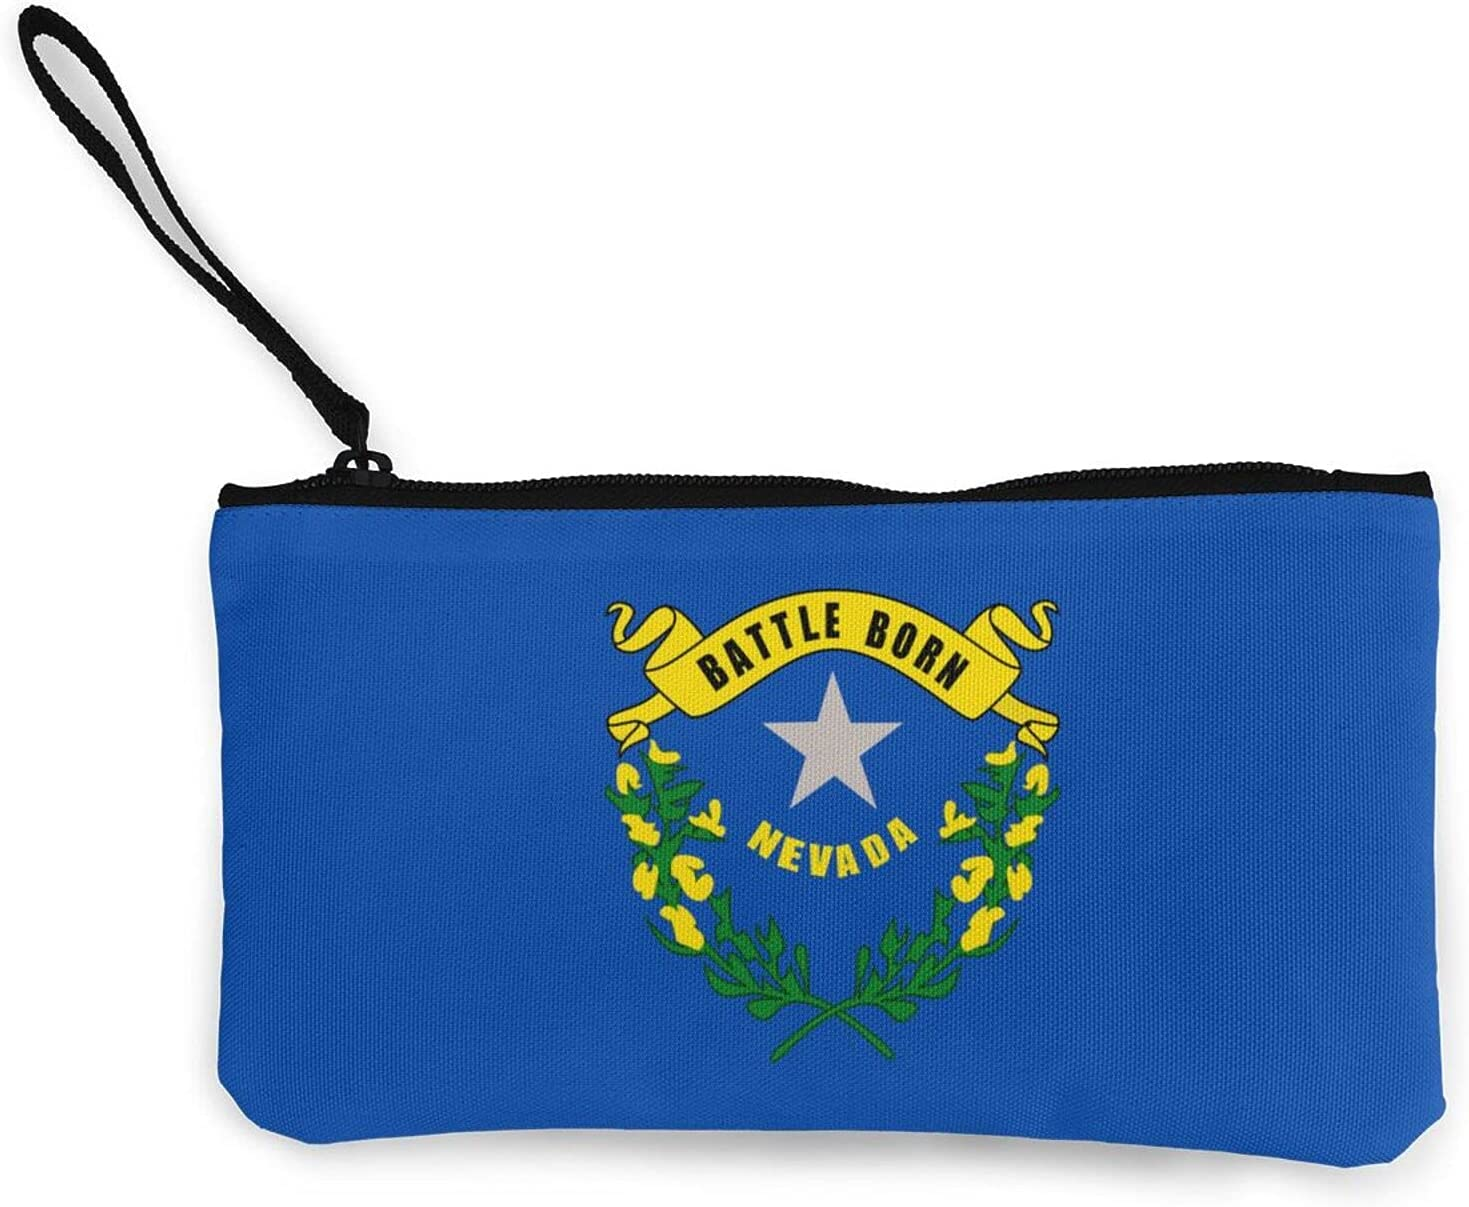 Nevada State Flag Multifunction Travel Toiletry Pouch Small Canvas Coin Wallet Bag Zipper